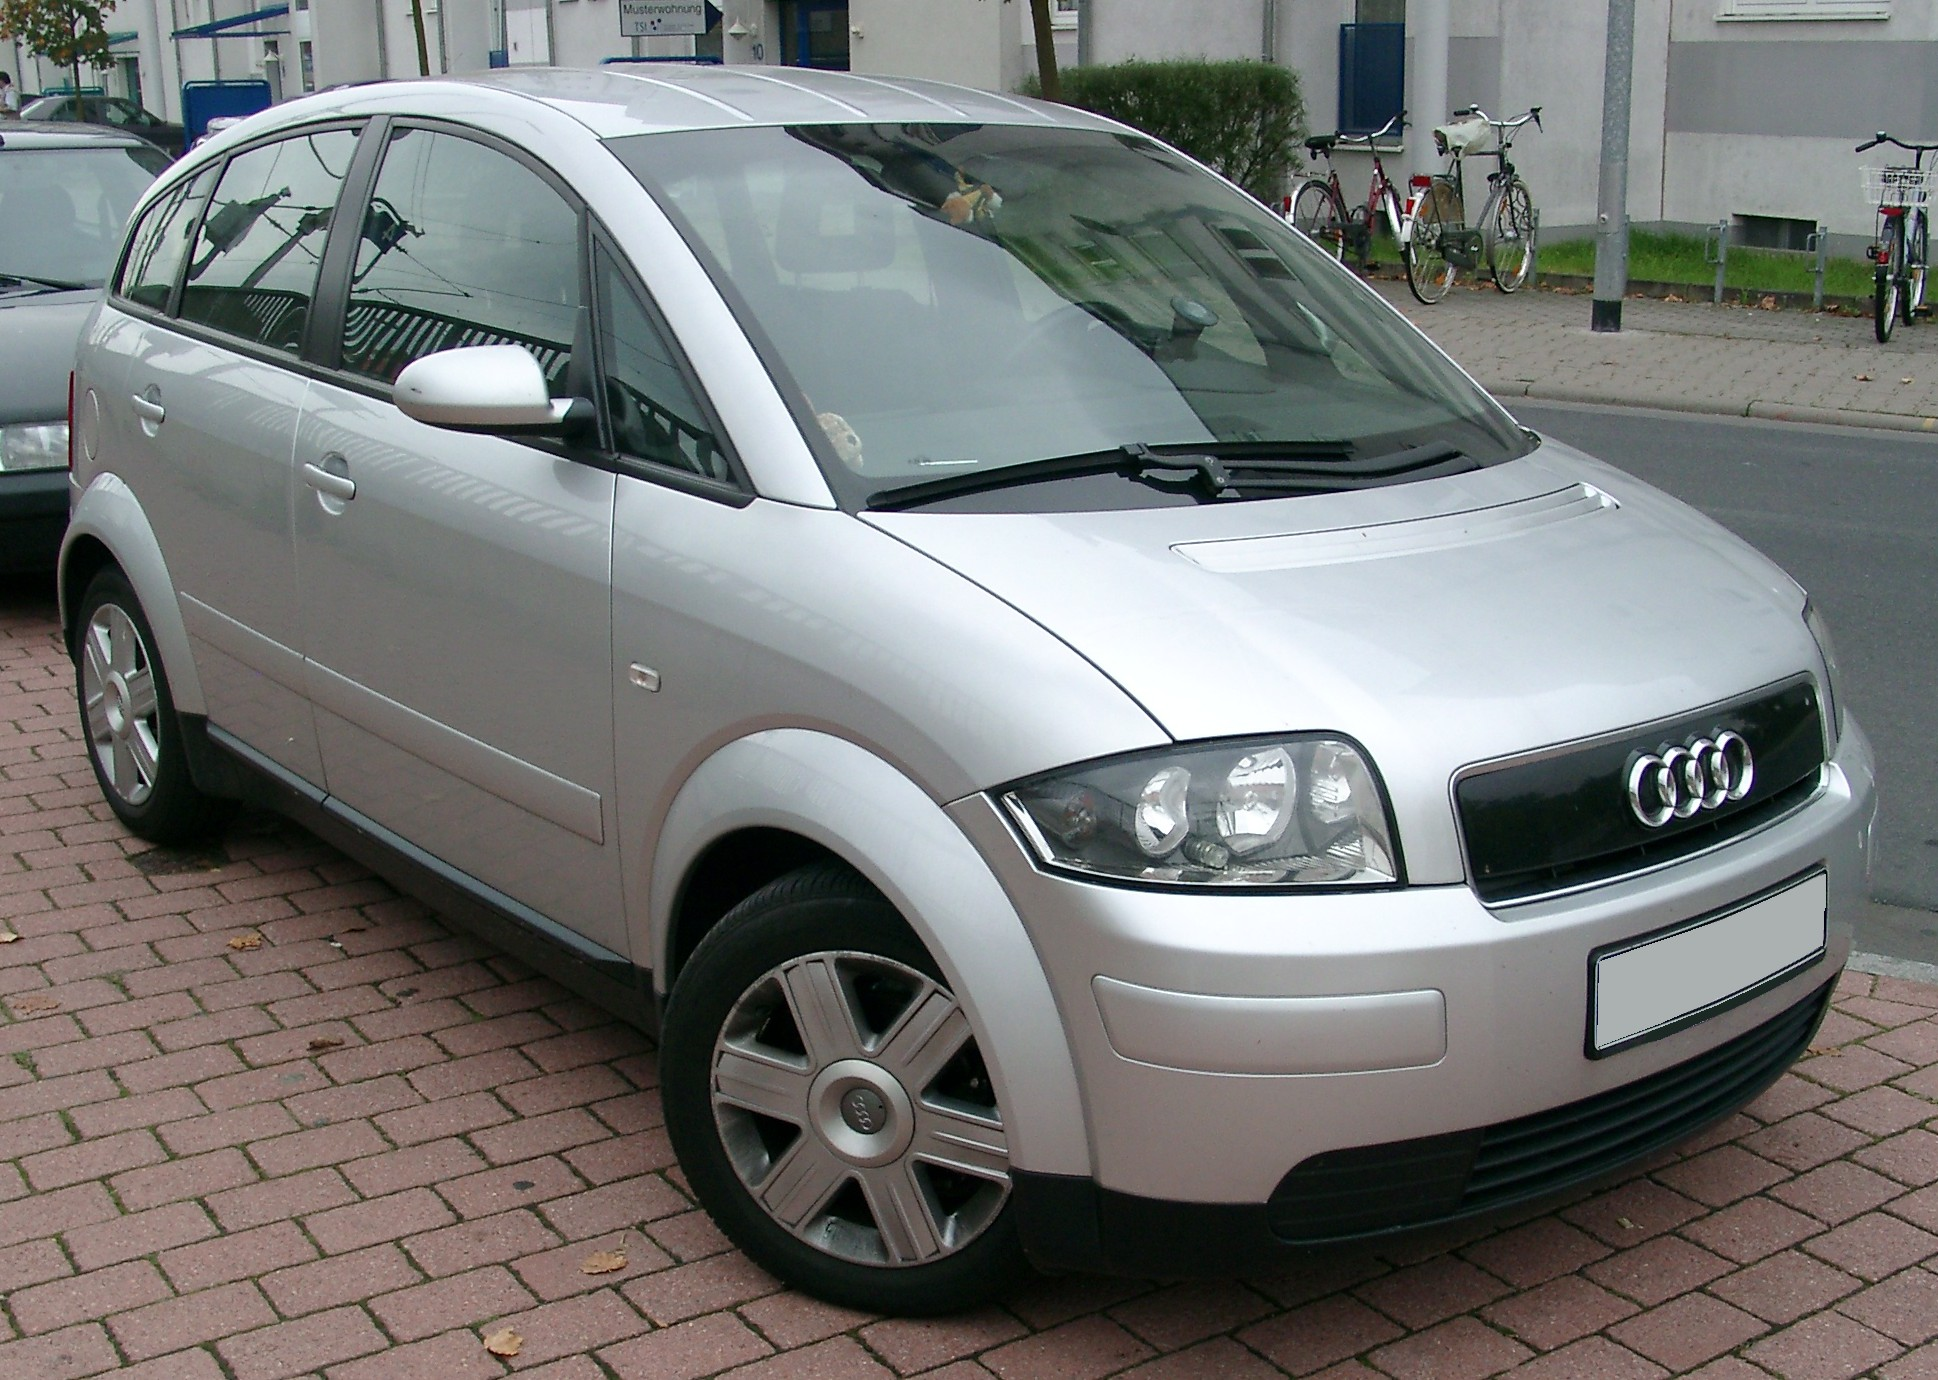 nationworld's 2012 Audi A2